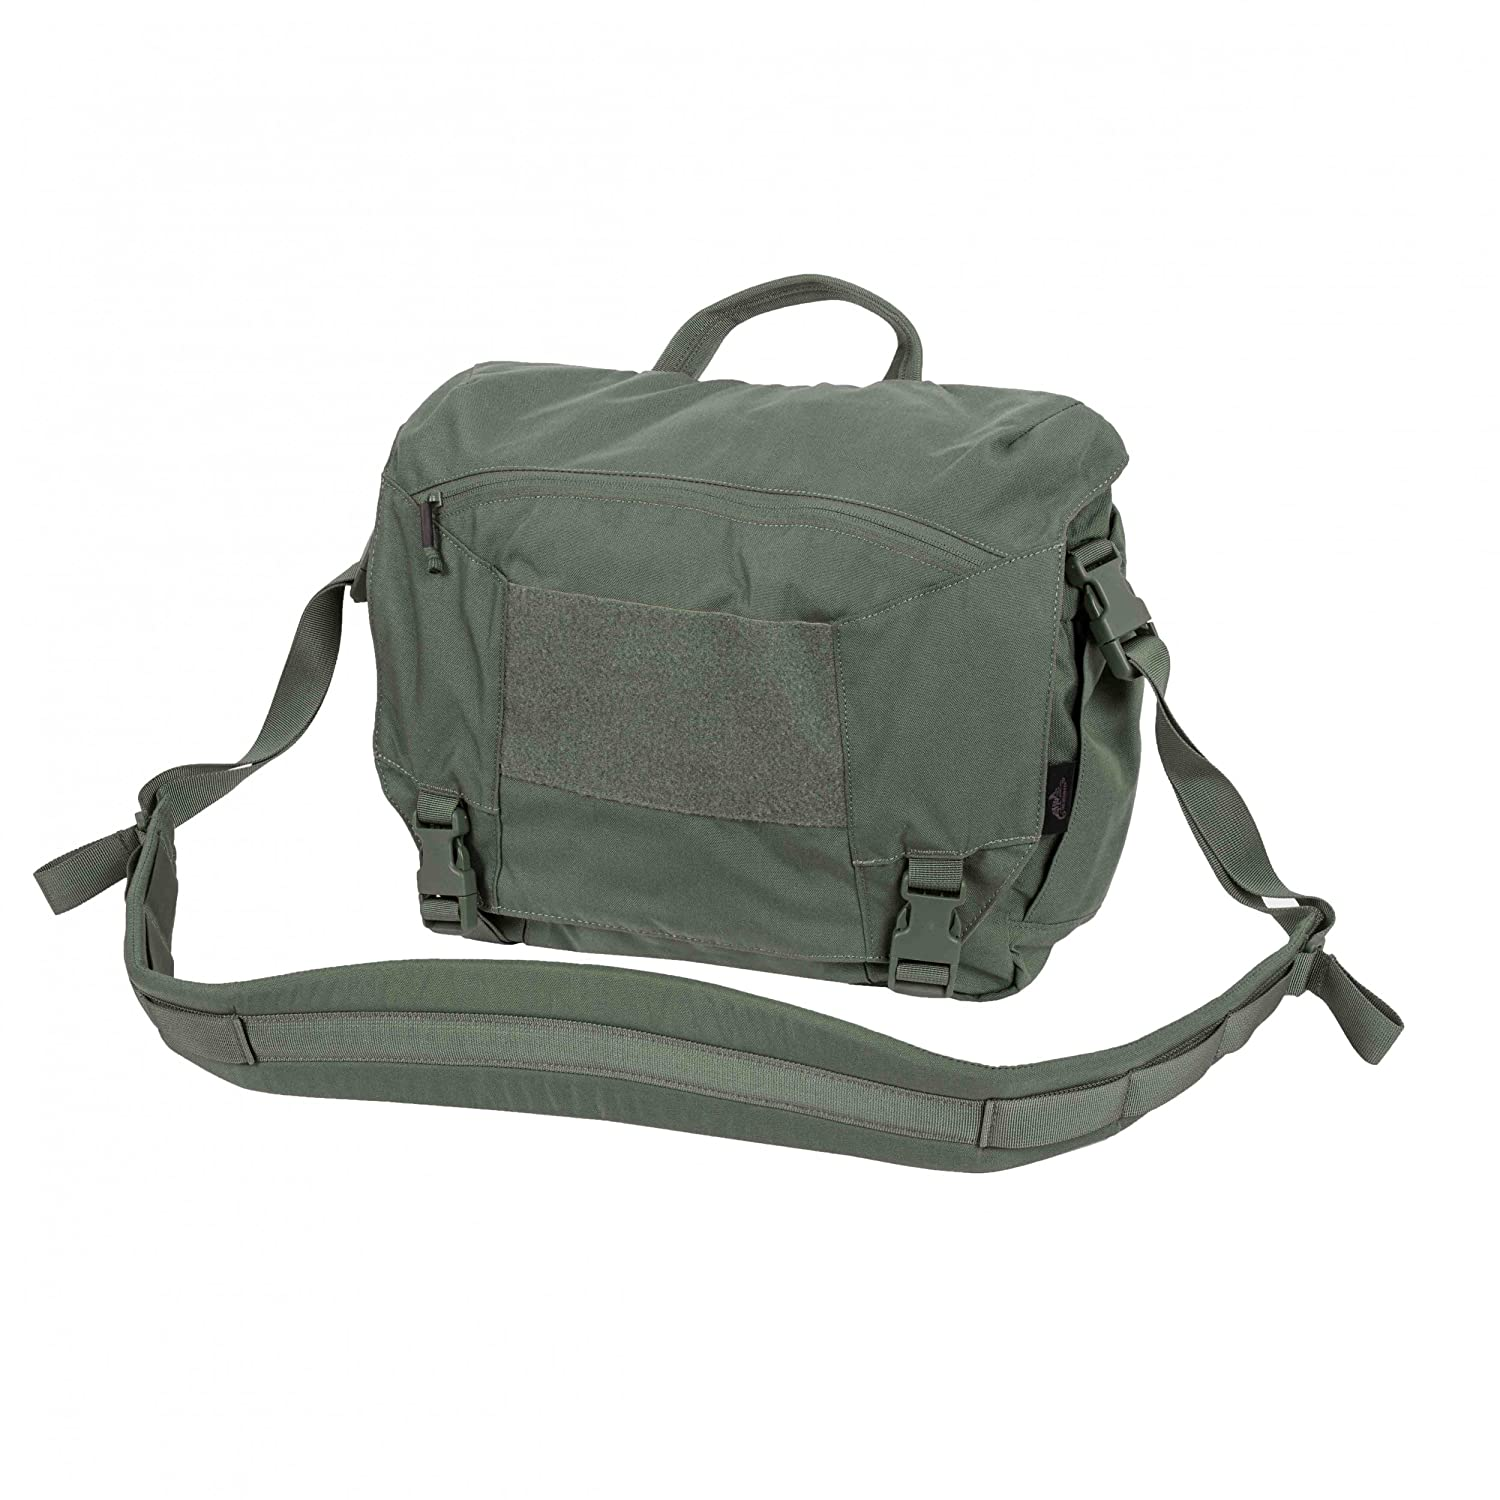 Helikon-Tex Urban Courier Bag Medium -Cordura- Adaptive Grün